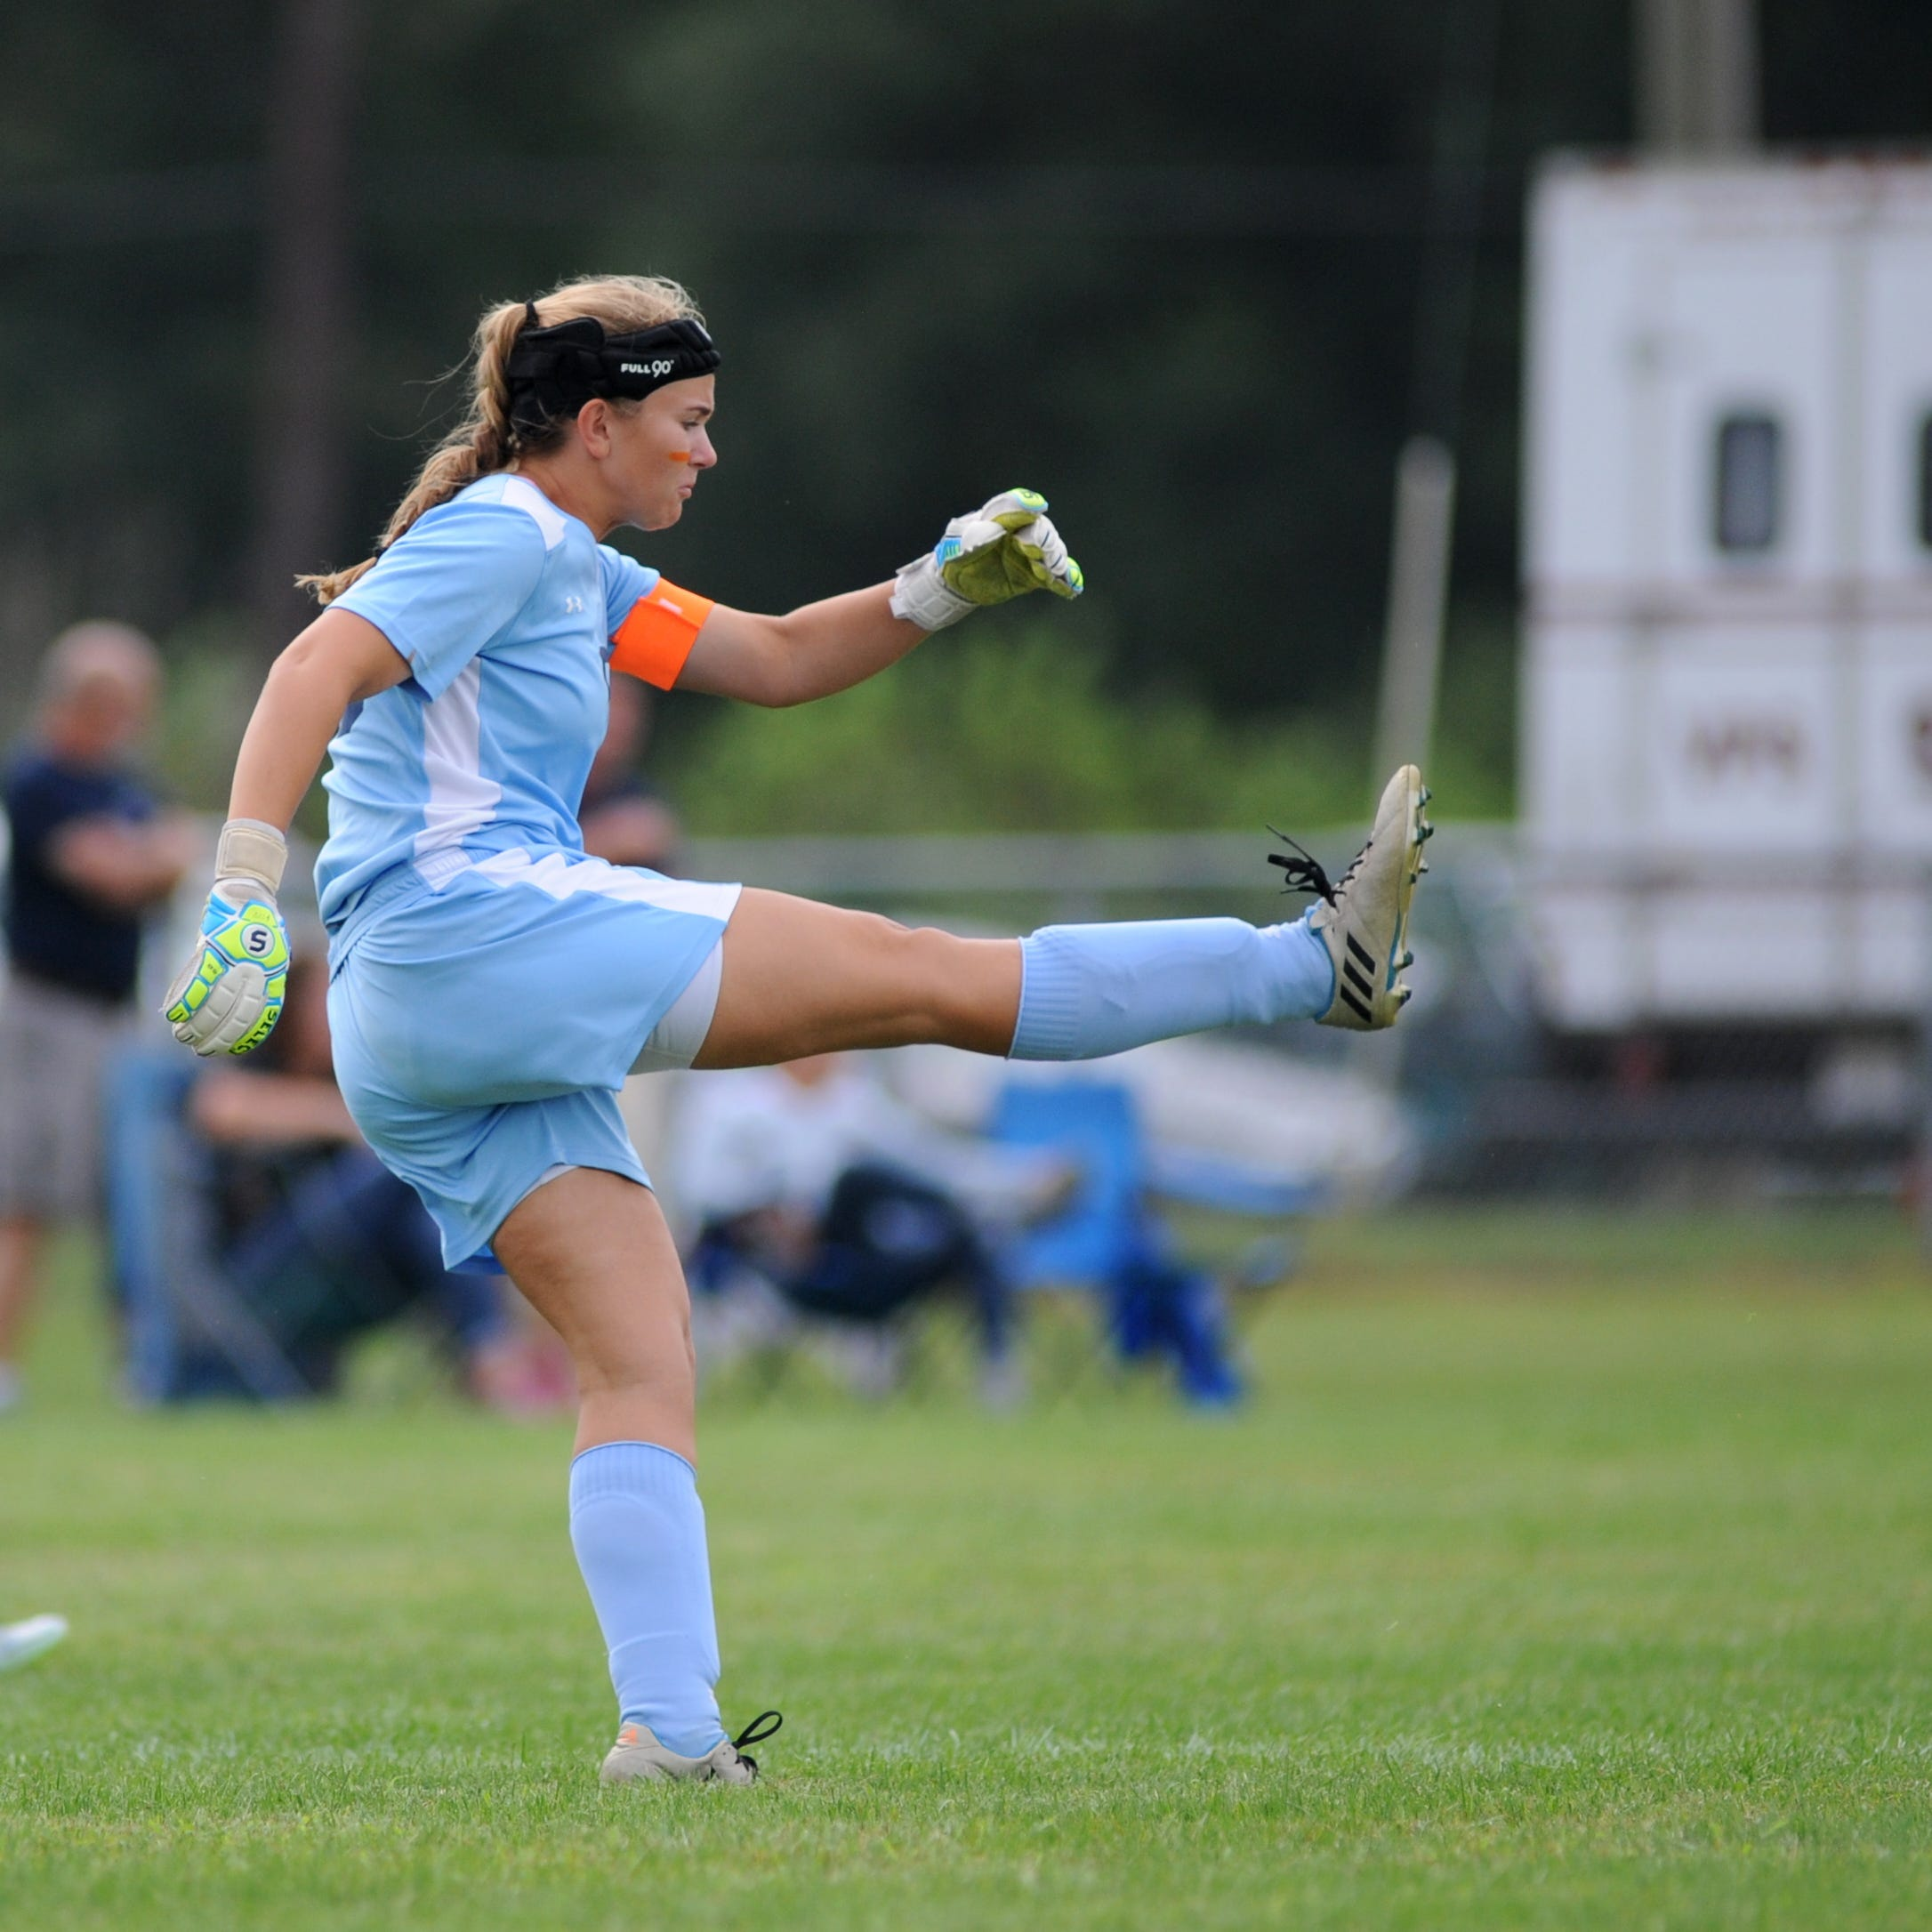 H.S. girls' soccer: Sooy, Millville defense creating plenty of noise this season